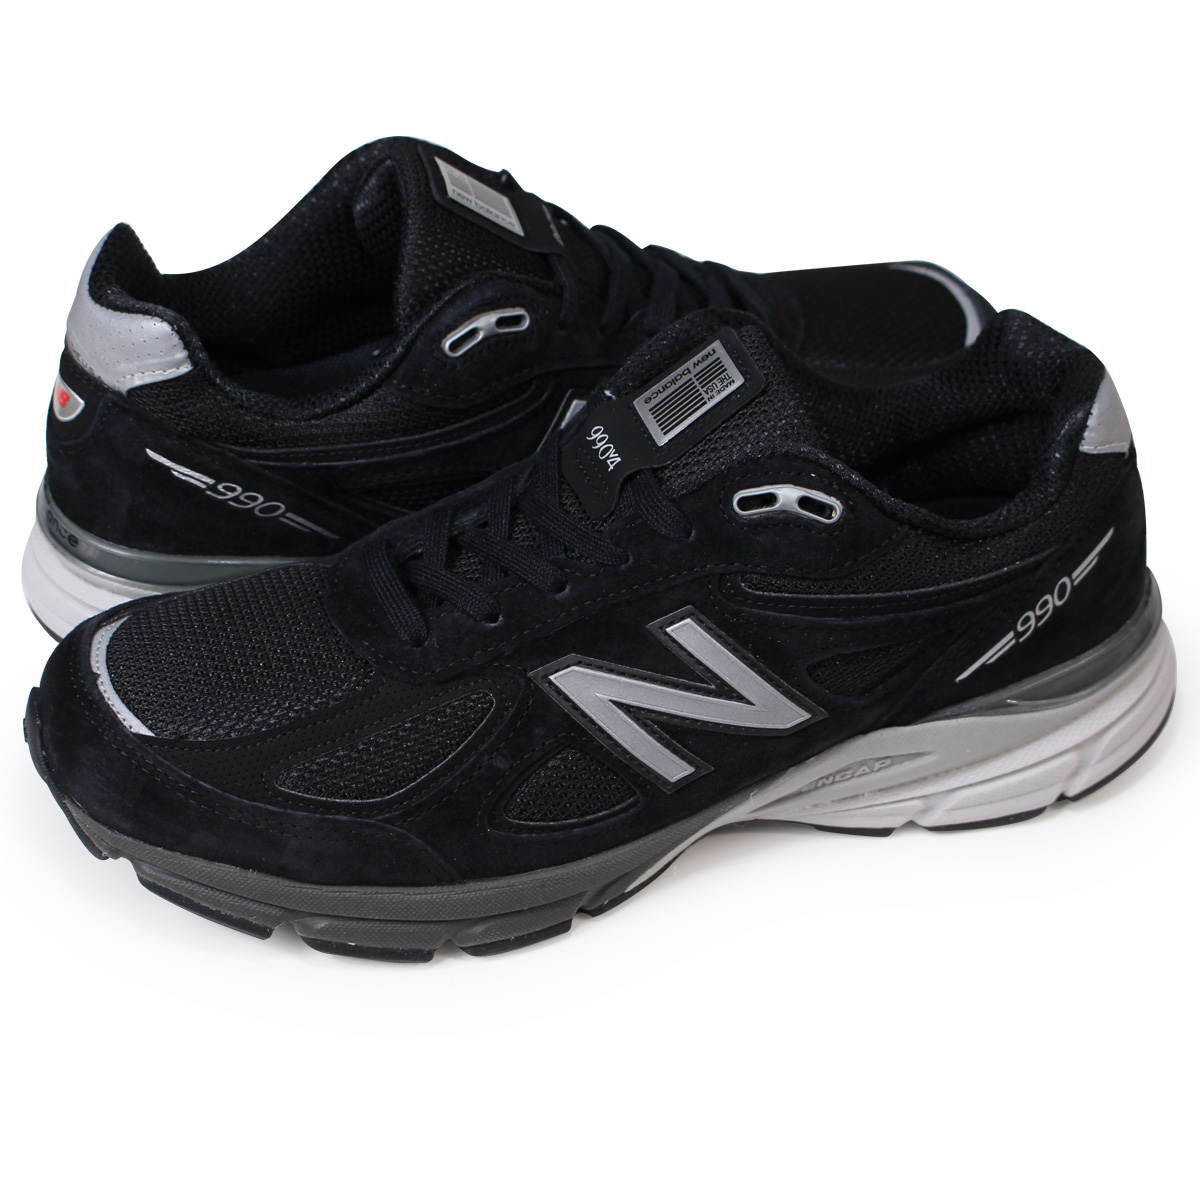 buy popular 3bb88 2f770 new balance M990BK4 990 men's New Balance sneakers D Wise MADE IN USA shoes  black